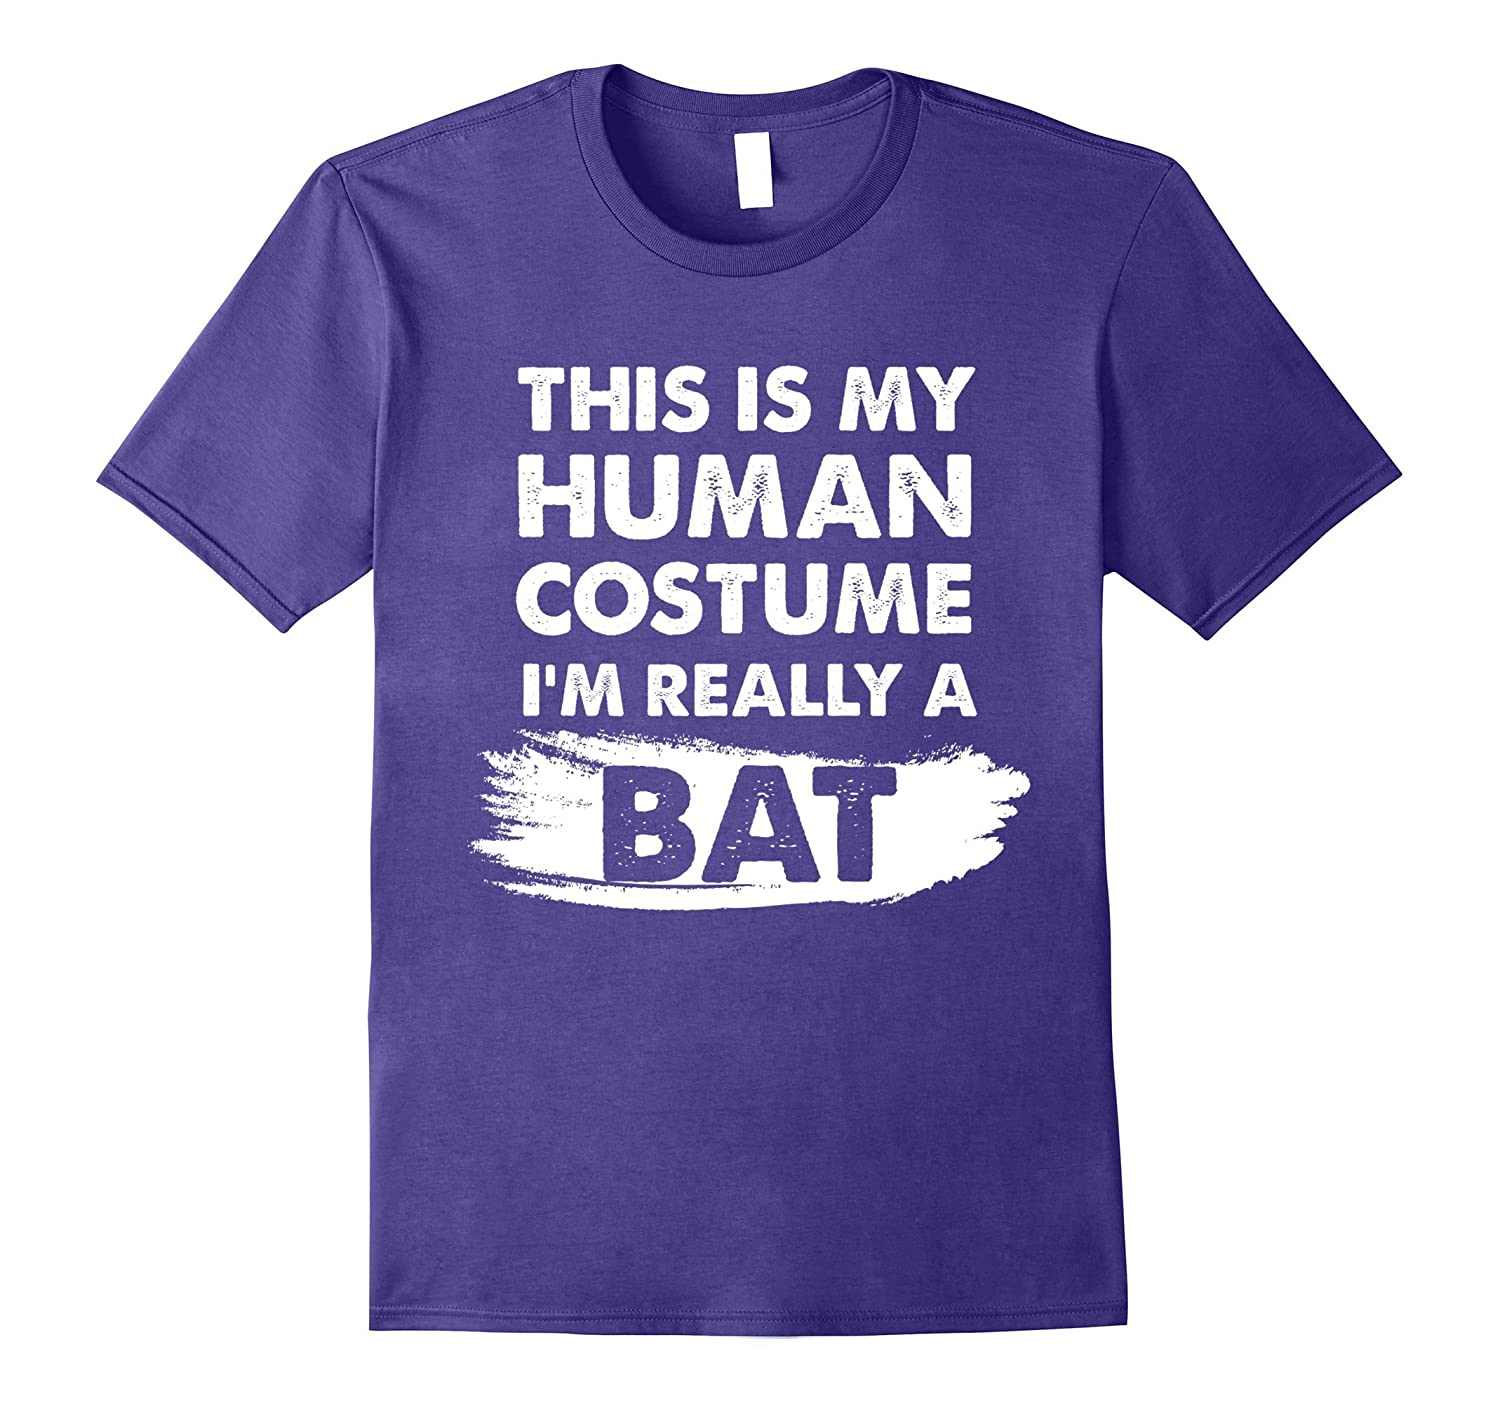 This Is My Human Costume I'm Really a Bat, Halloween Shirt-FL